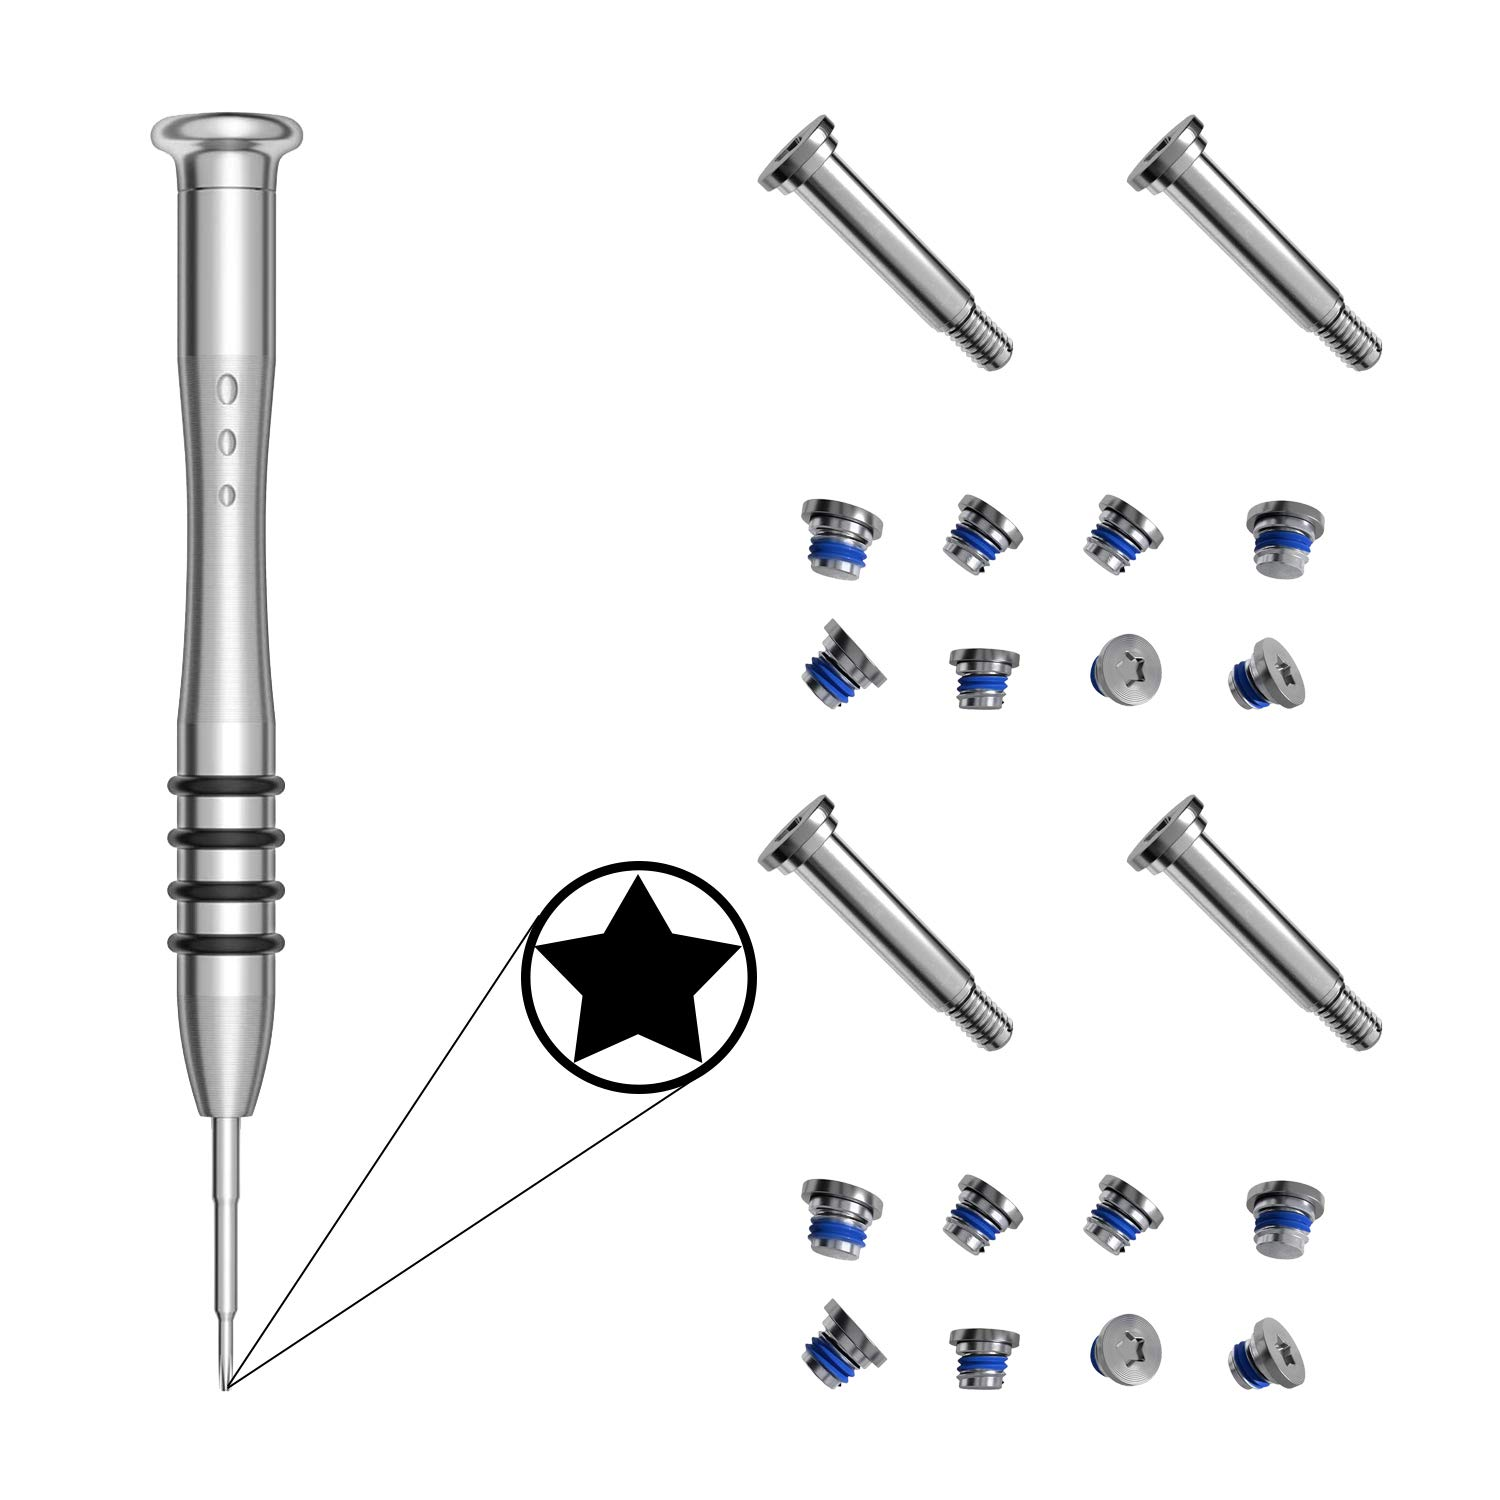 LIANG 2 Sets Replacement Screws with Screwdriver for MacBook Air 13 inch A1369 A1466 2010 to 2017, Unibody Bottom Case Cover P5 Pentalobe Repair Replacement Tool Kit Notebook Laptop PC Computer Screw